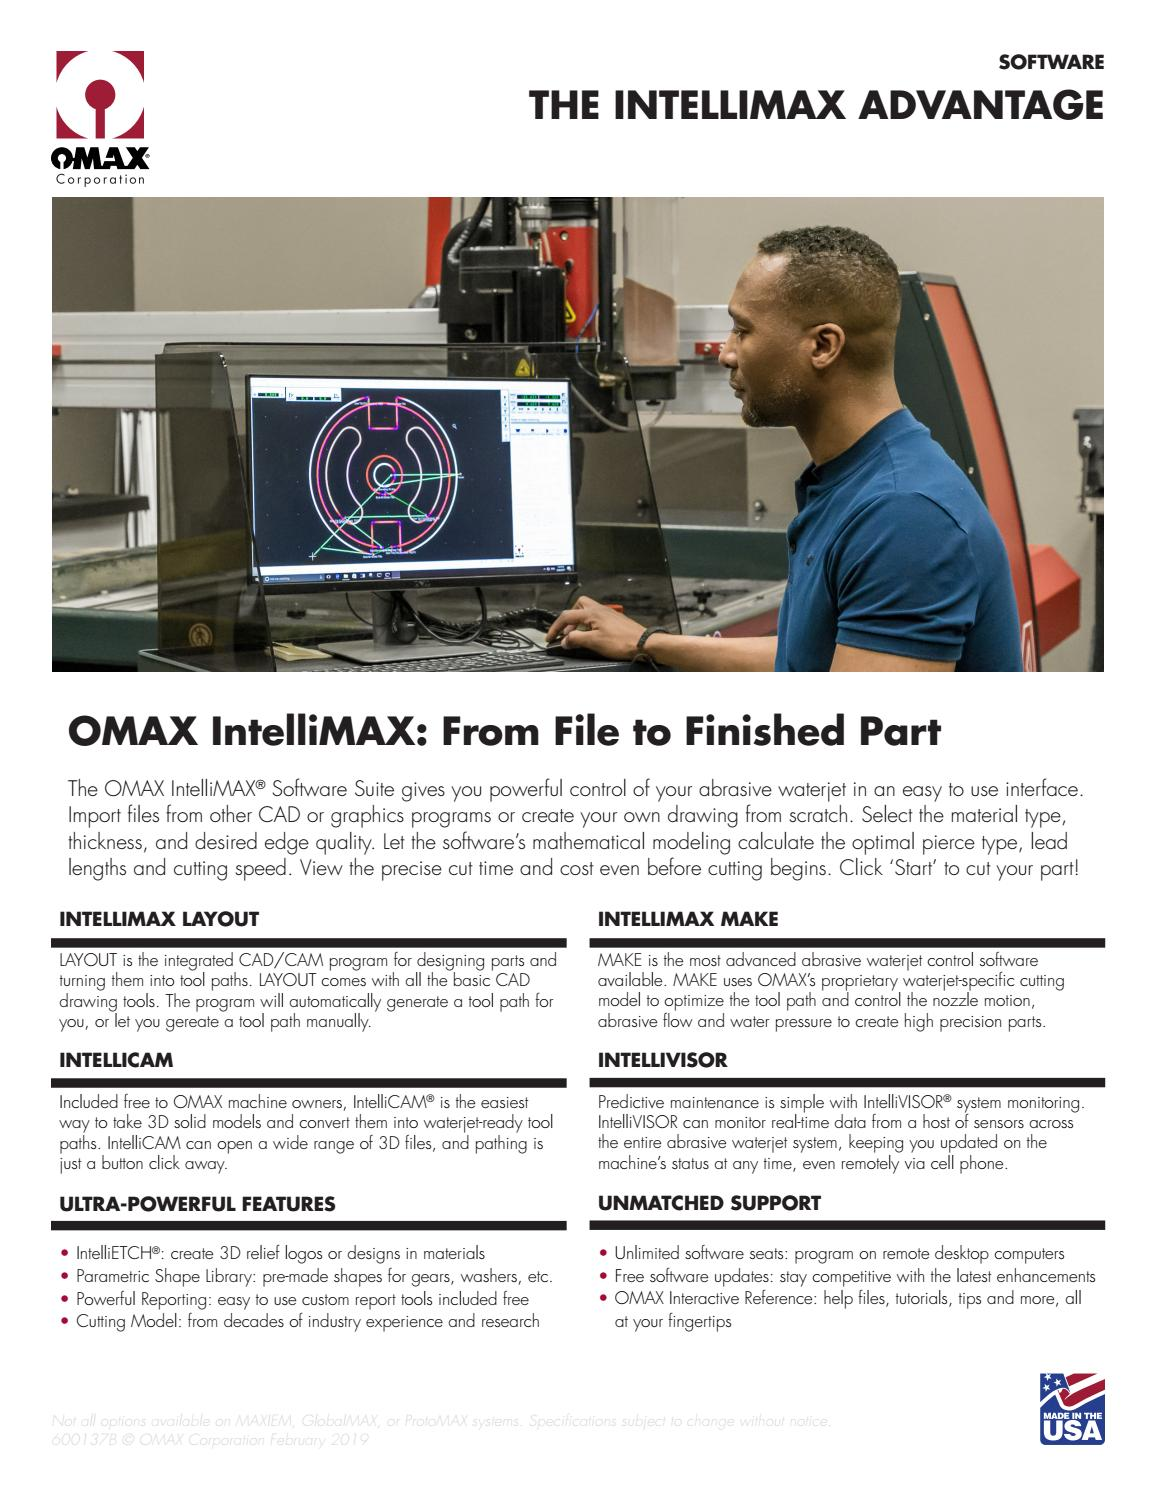 Ficha Técnica OMAX IntelliMAX (EN) by Weld Vision - issuu